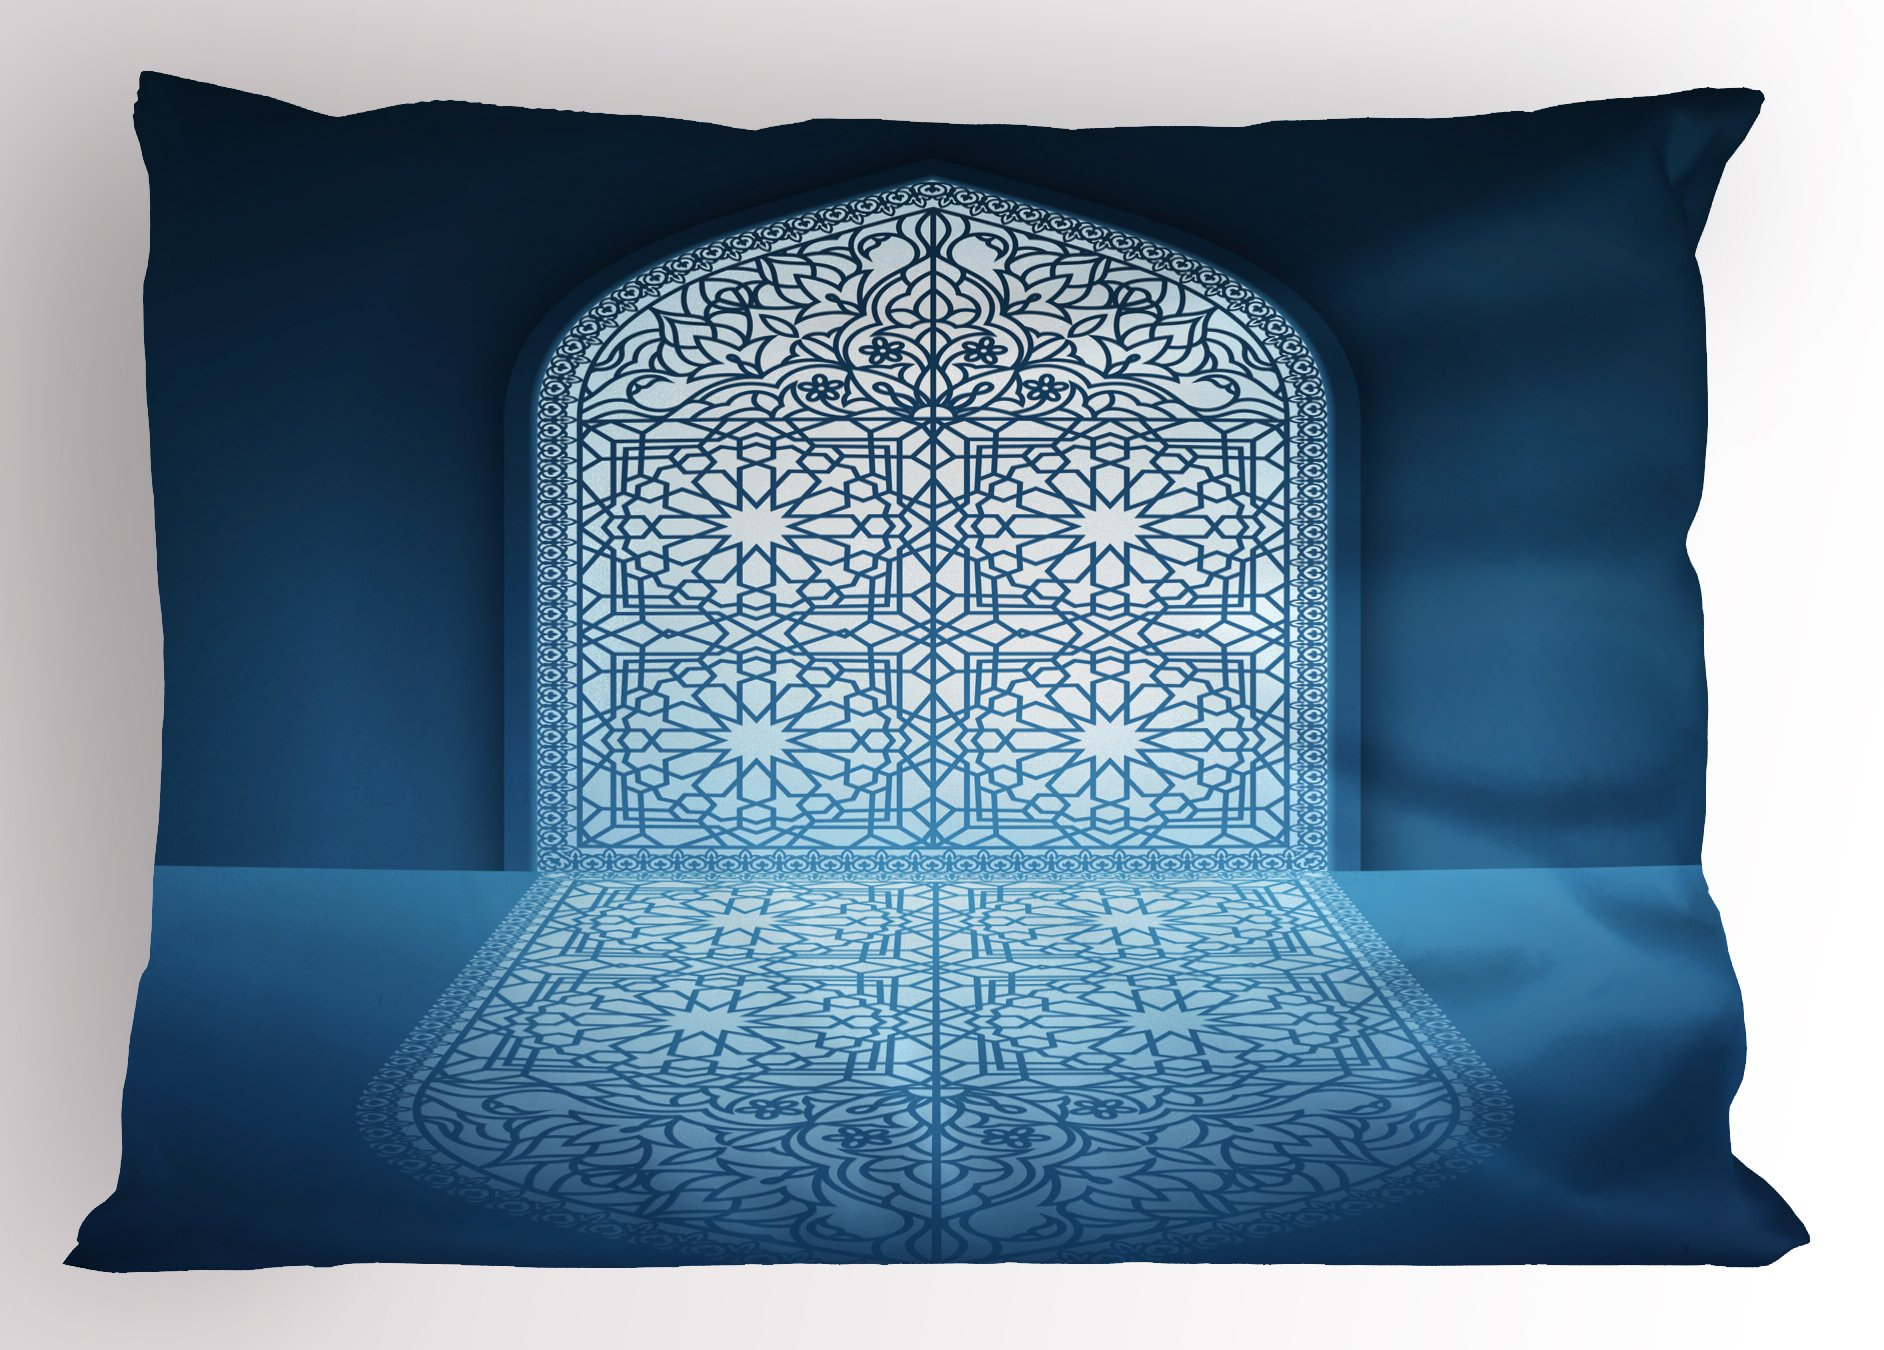 Lunarable Arabian Pillow Sham, Intricate Lace Window Frame Pattern and Reflection Moroccan Oriental Style, Decorative Standard Size Printed Pillowcase, 26 X 20 inches, White Turquoise